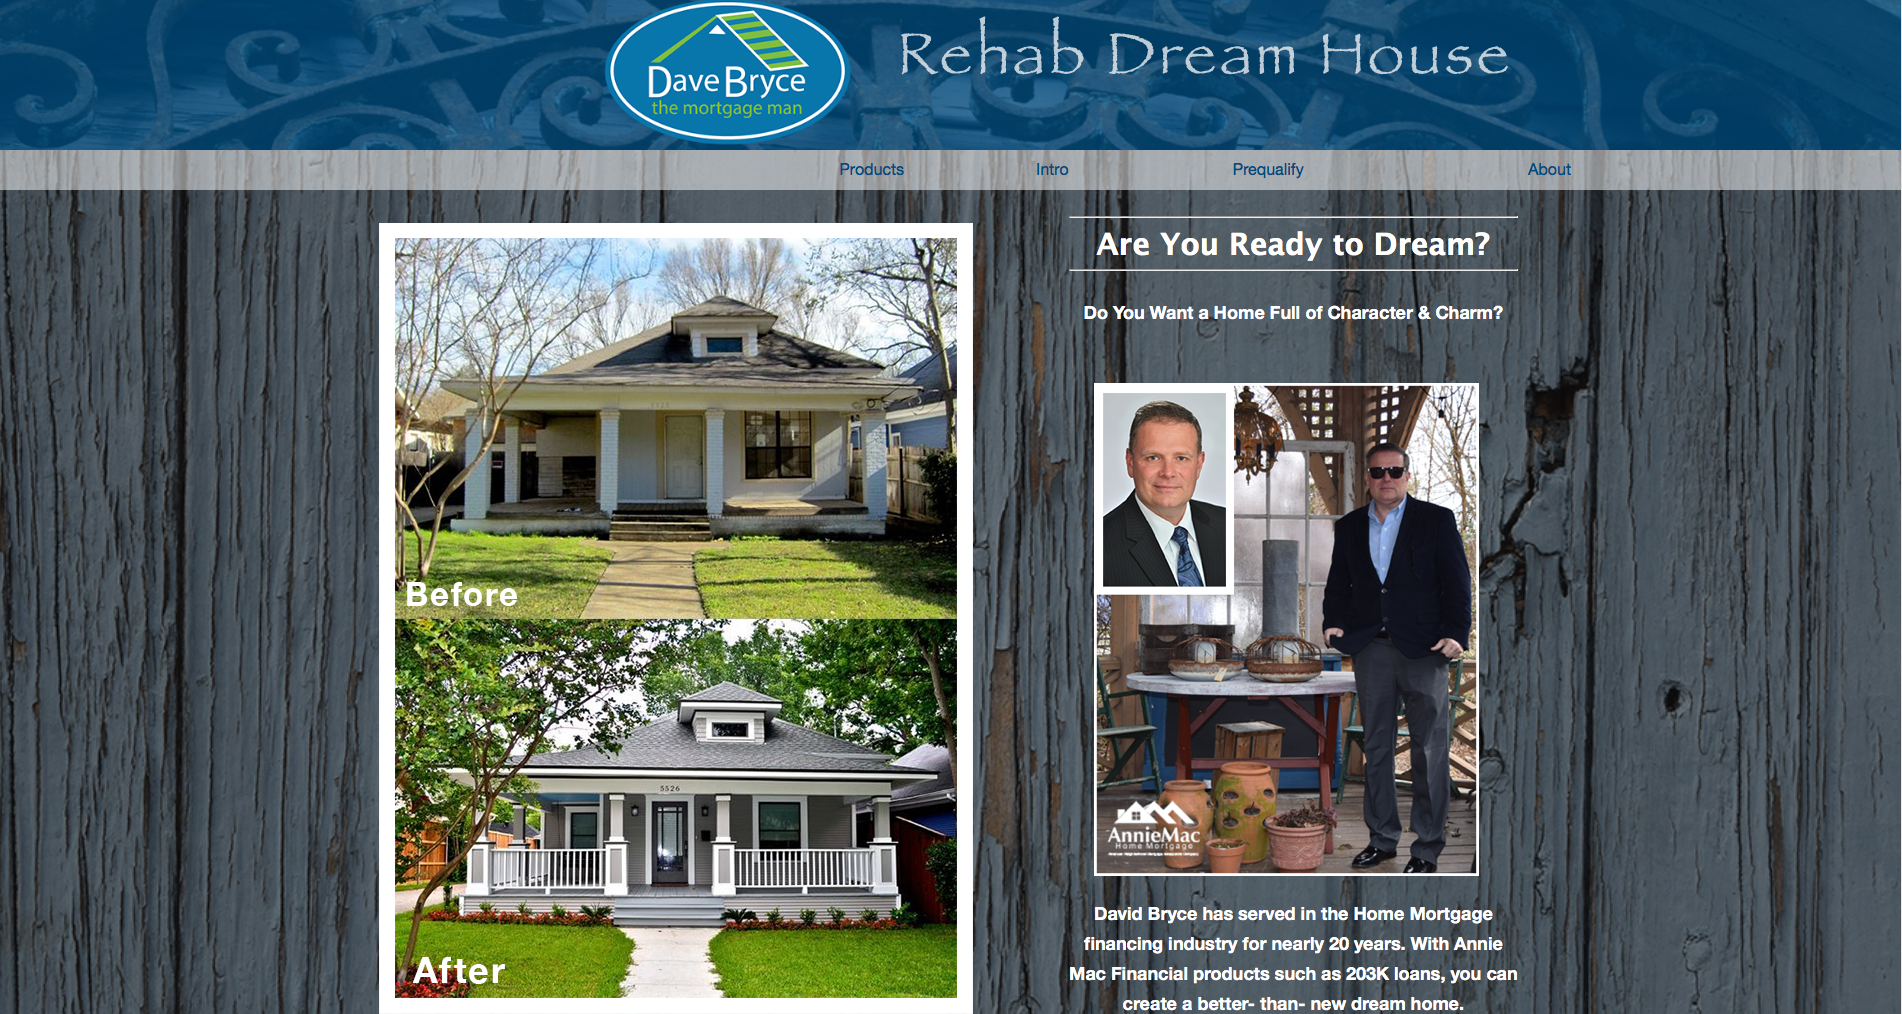 www.rehabdreamhouse.com